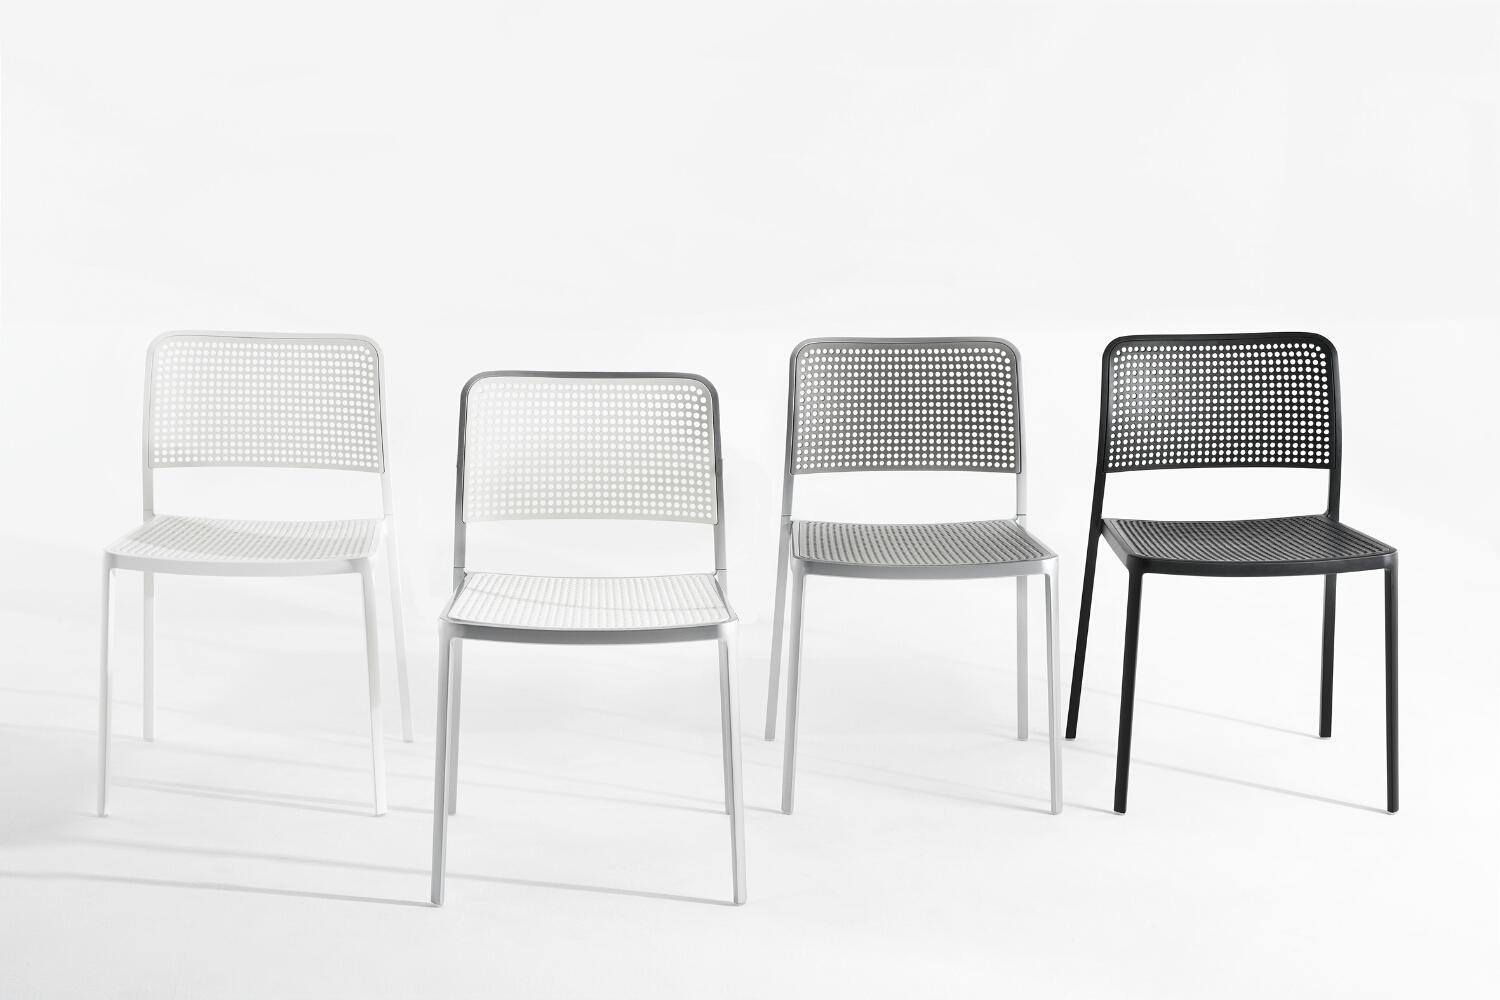 Audrey Chair by Piero Lissoni for Kartell